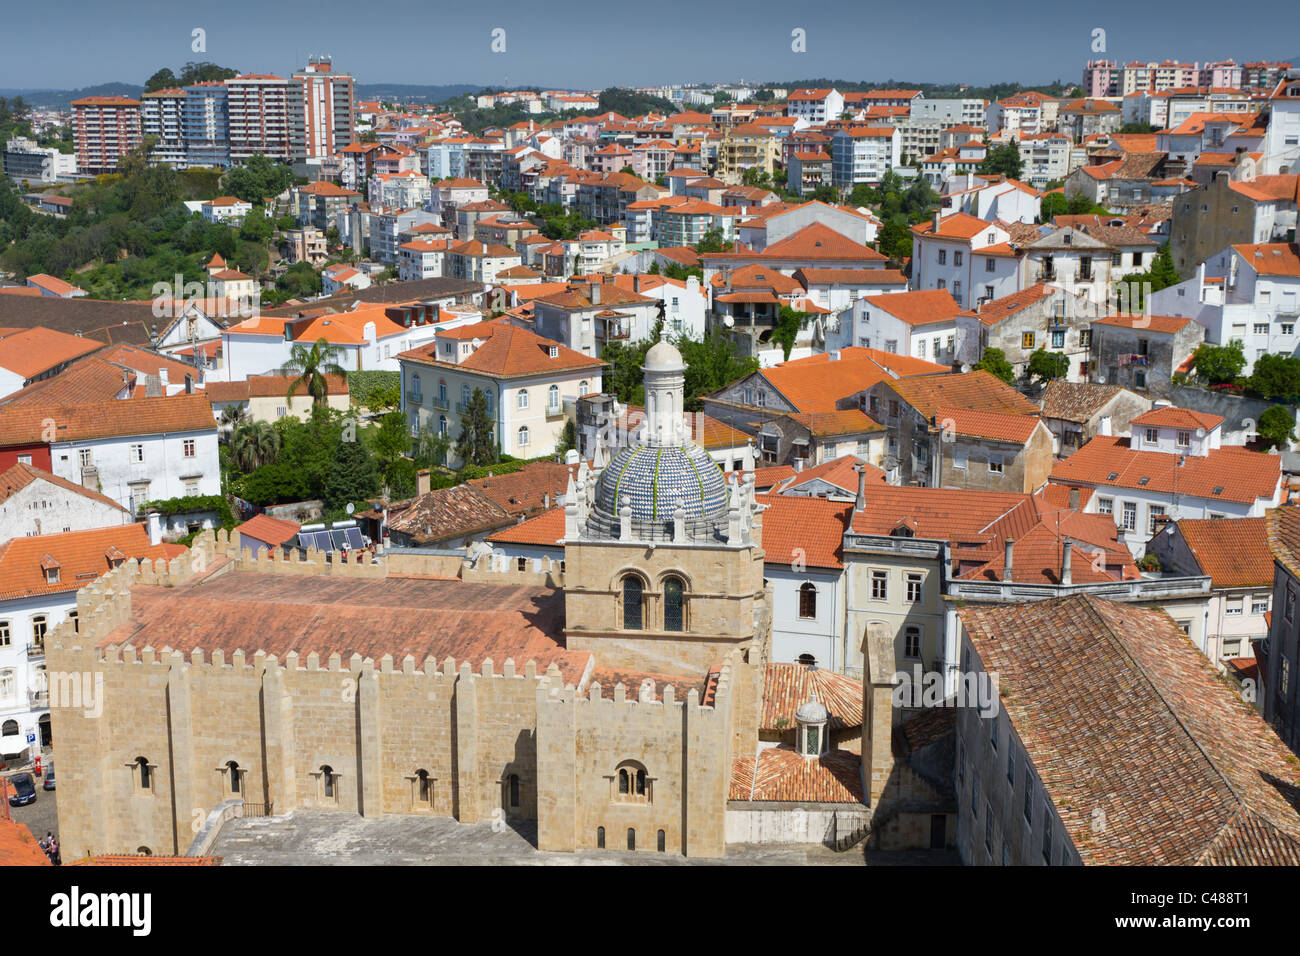 cityscape over the roofs of Coimbra with mighty cathedral se velha de Coimbra, Portugal Stock Photo